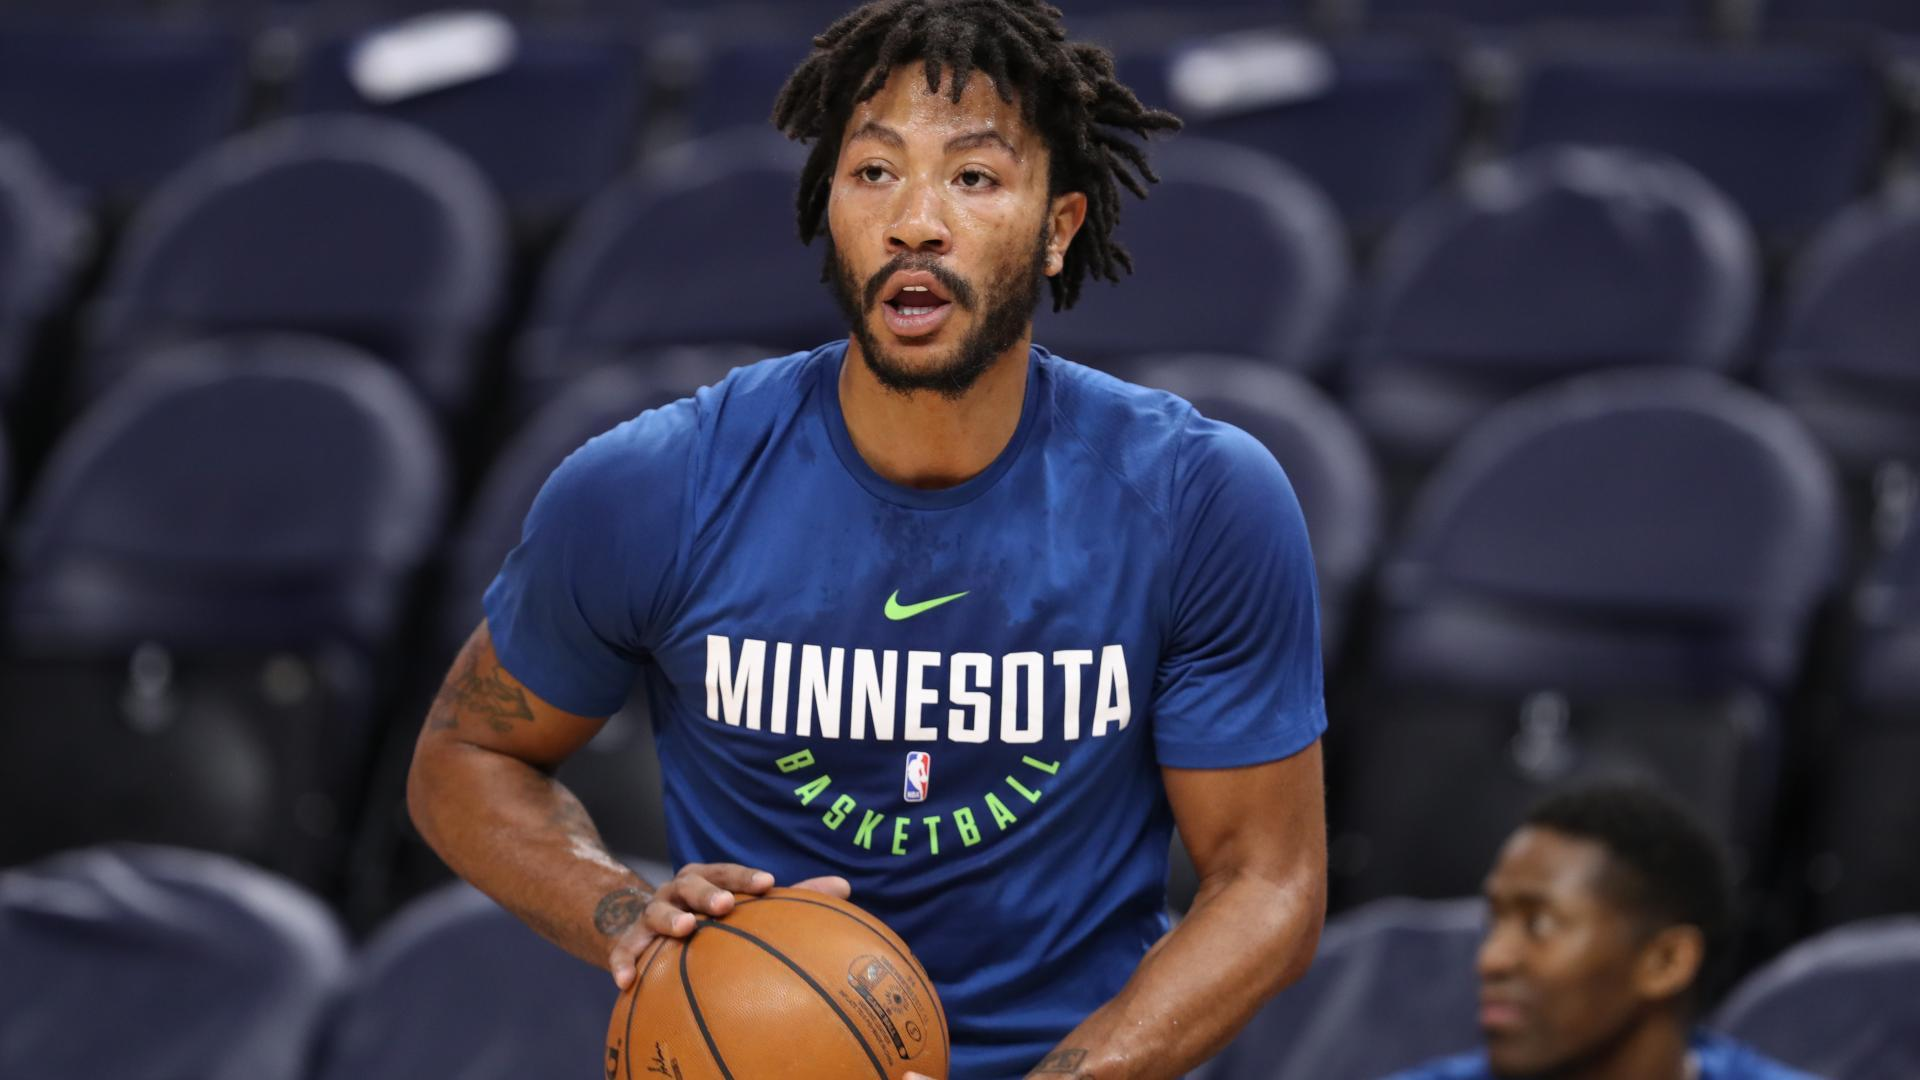 199013acc3b6 Derrick Rose blocks out doubters as he starts new journey in ...